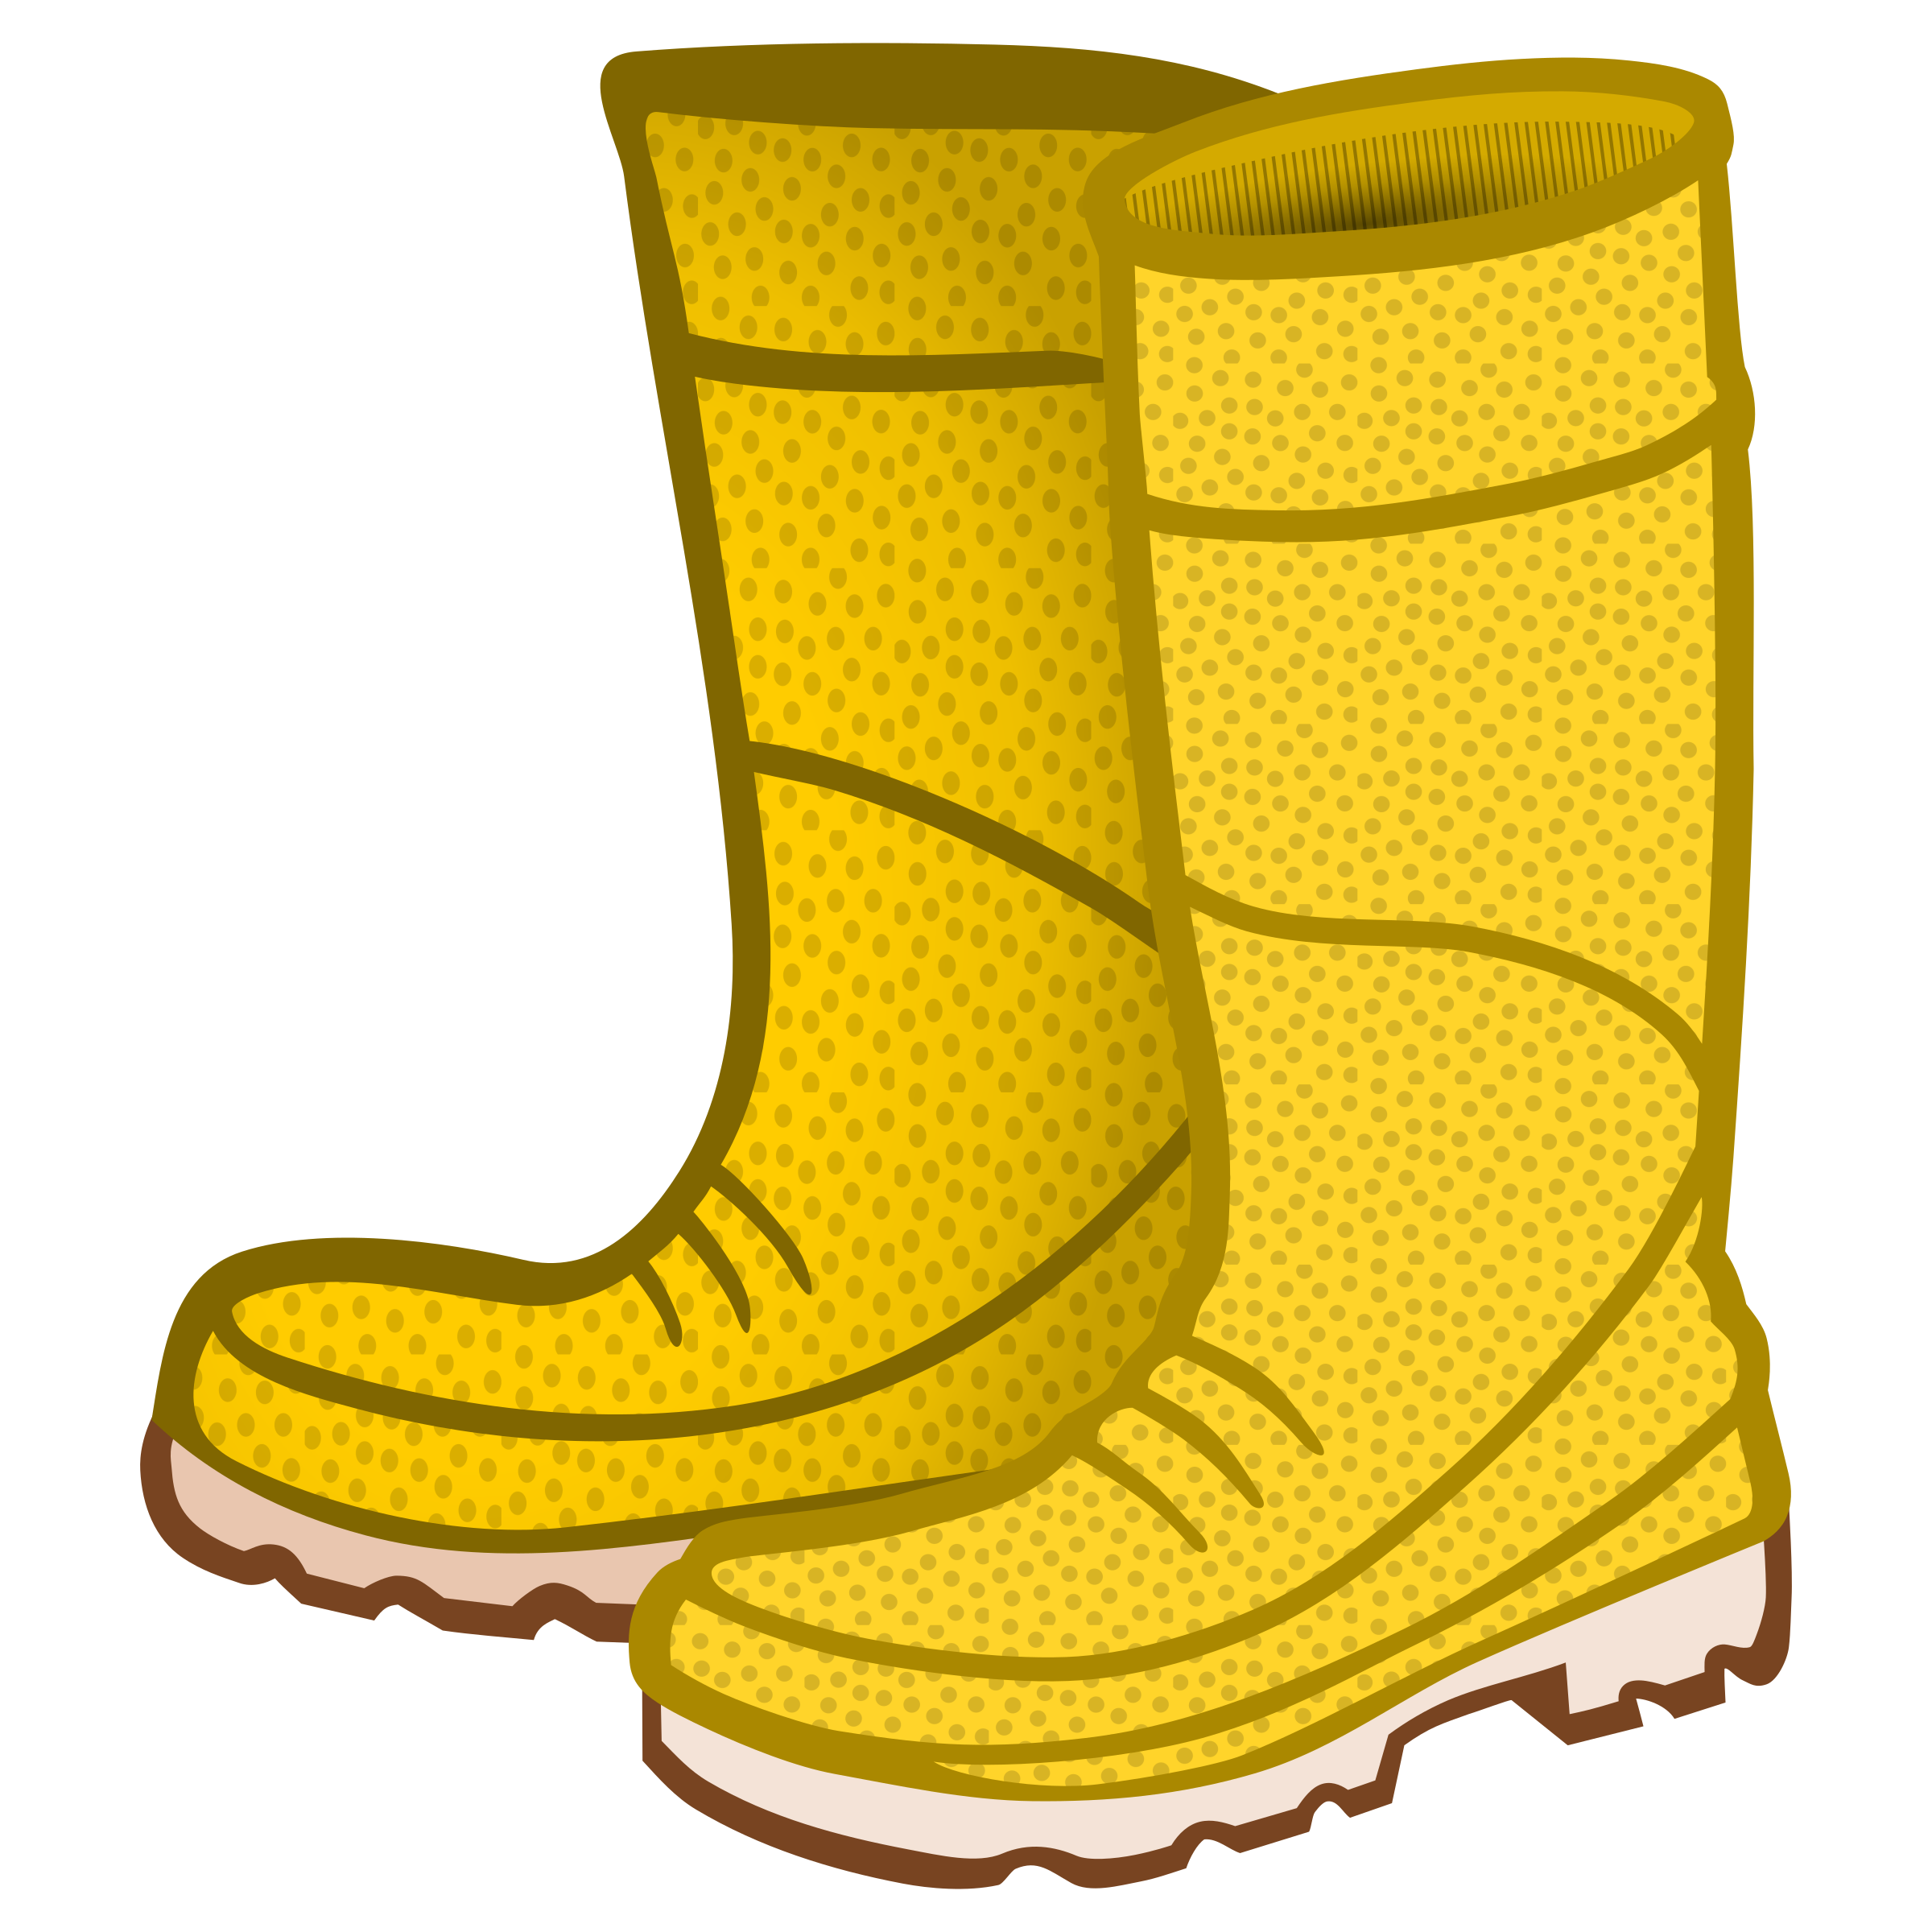 Rain boots clipart rubber boots coloured.